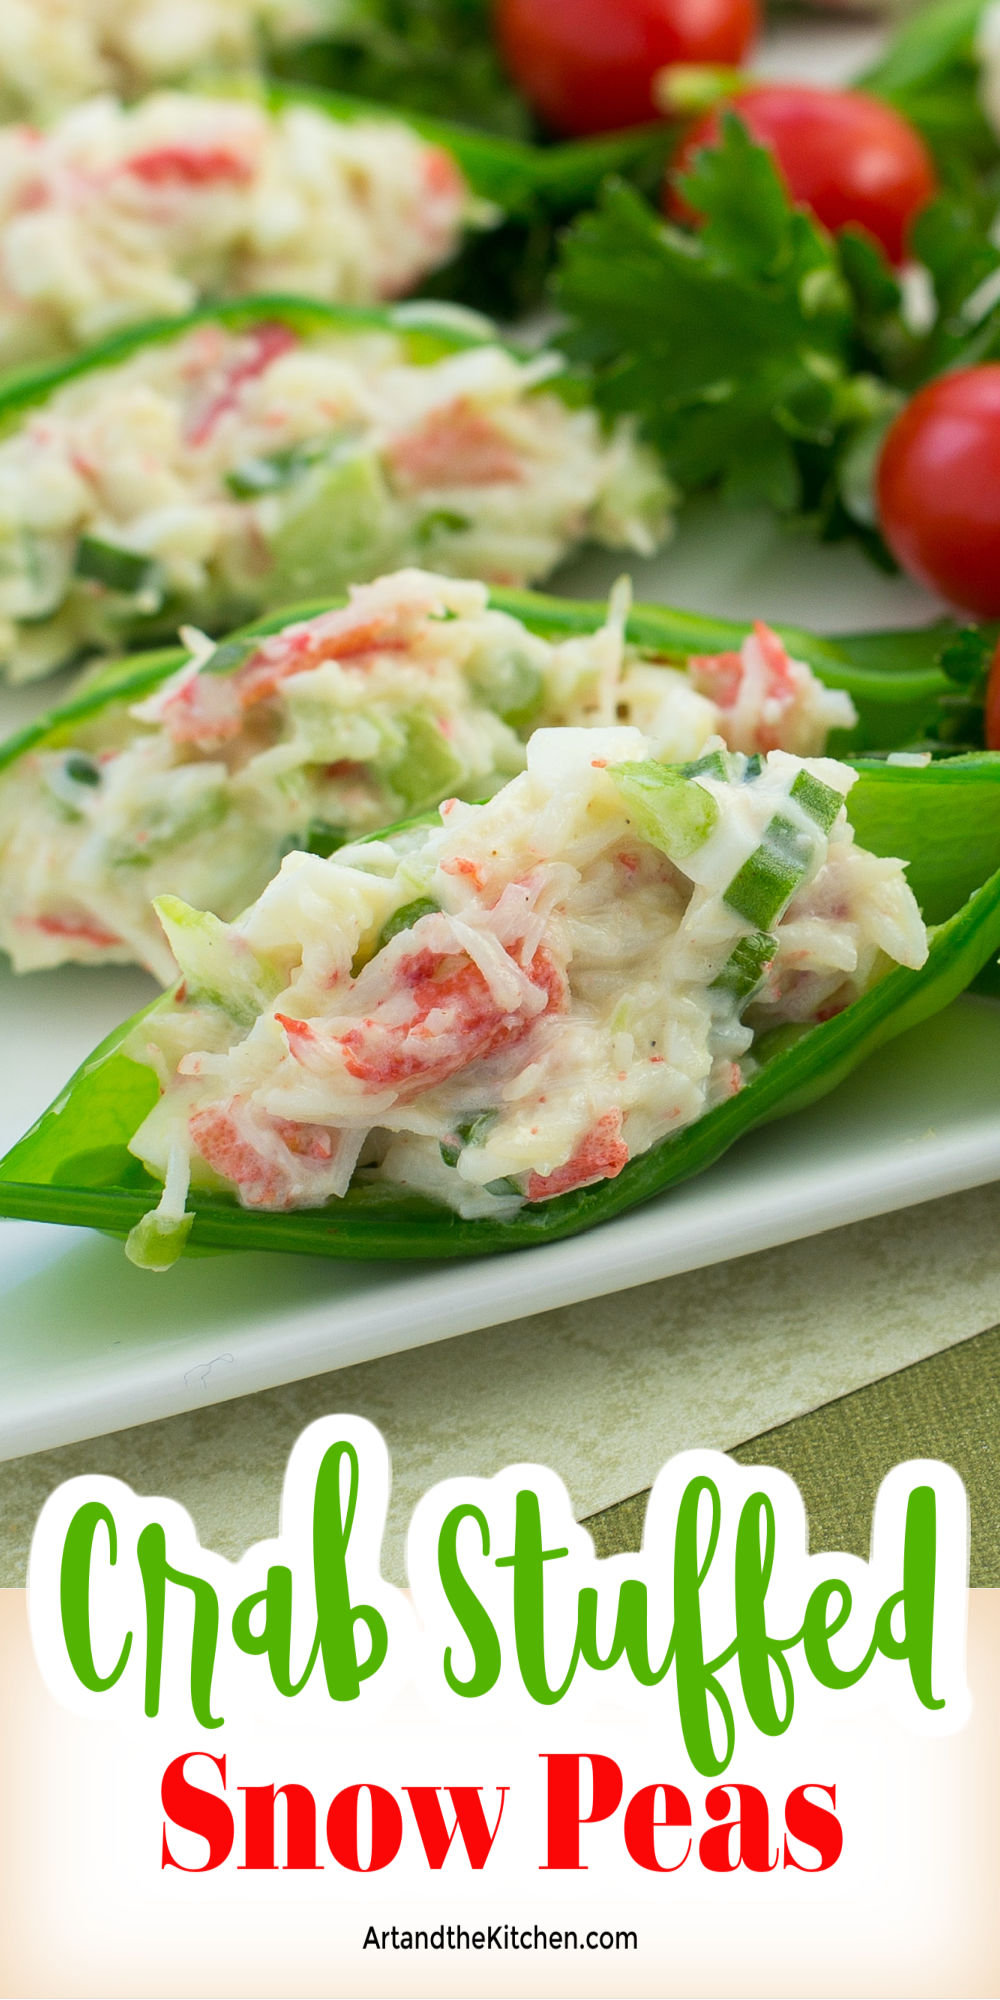 Crisp and light, these Crab Stuffed Snow Peas are a great appetizer you can make ahead. They will be a hit appetizer at your next party! via @artandthekitch